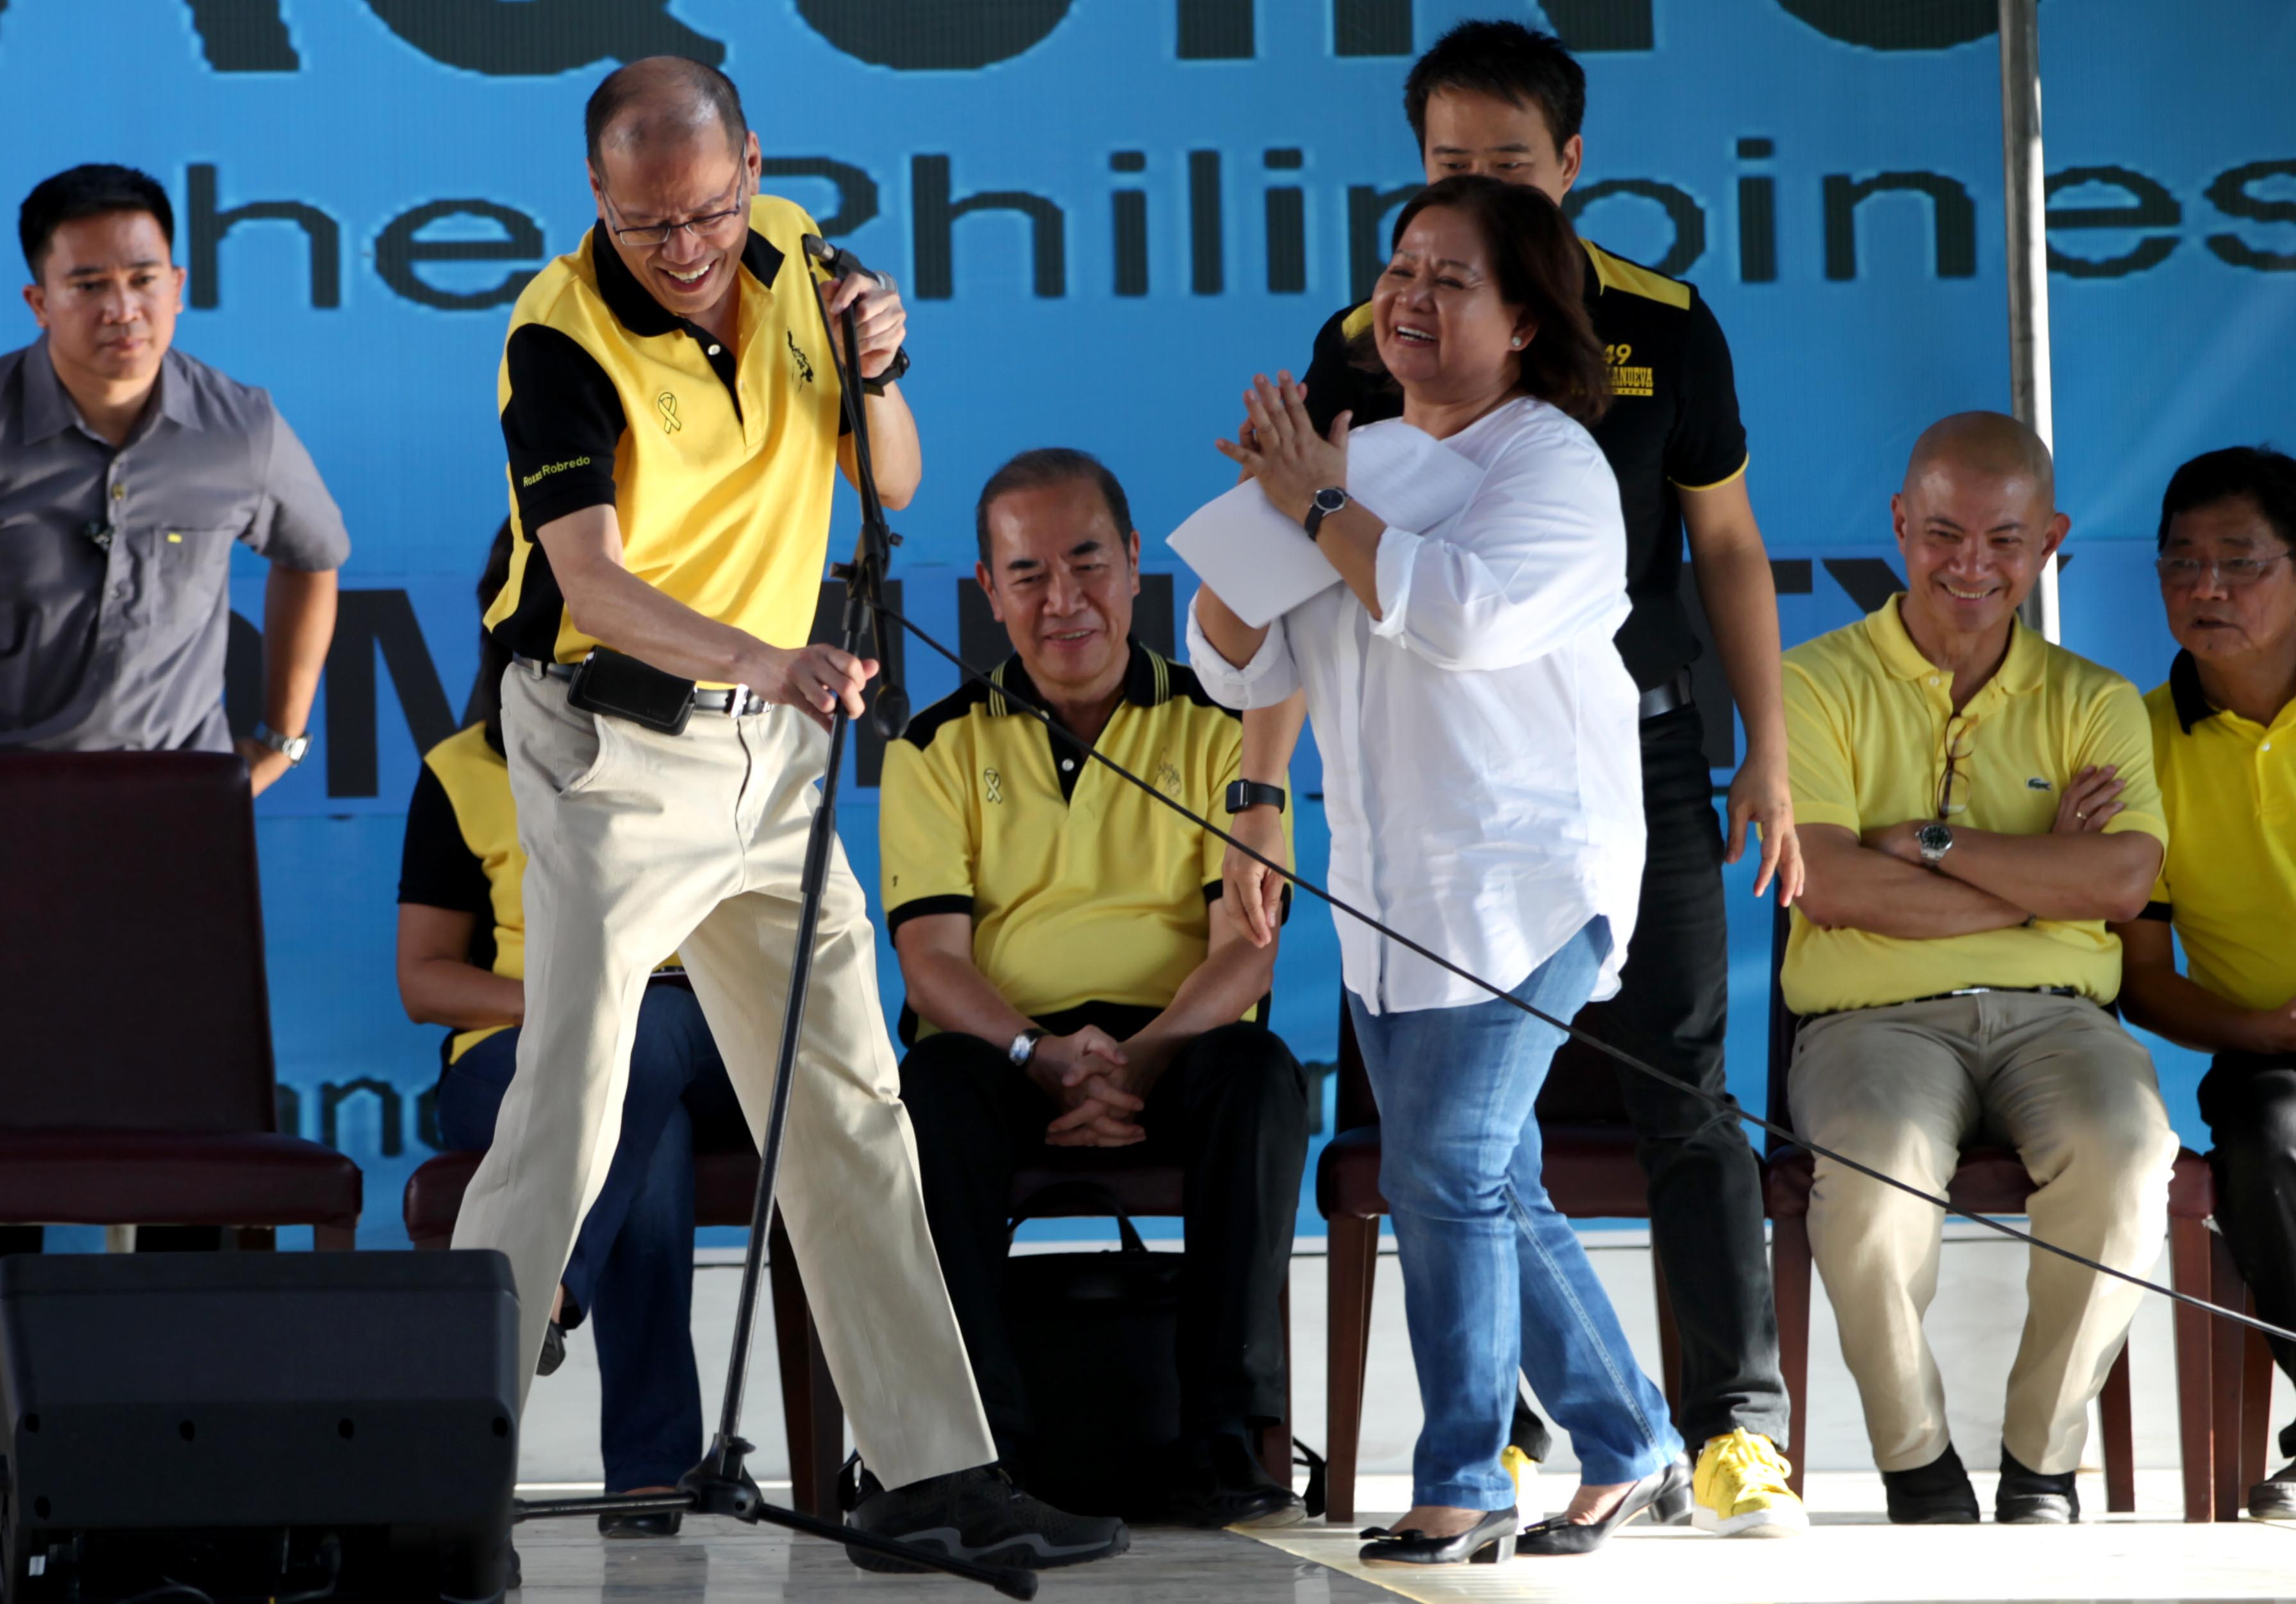 SUPPORT. Liberal Party (LP) chairman President Benigno S. Aquino III delivers his speech during the Meeting with Local Leaders at the San Fernando City Pampangga Thursday, March 16, 2016. (Photo by Benhur Arcayan /Malacanang Photo Bureau)